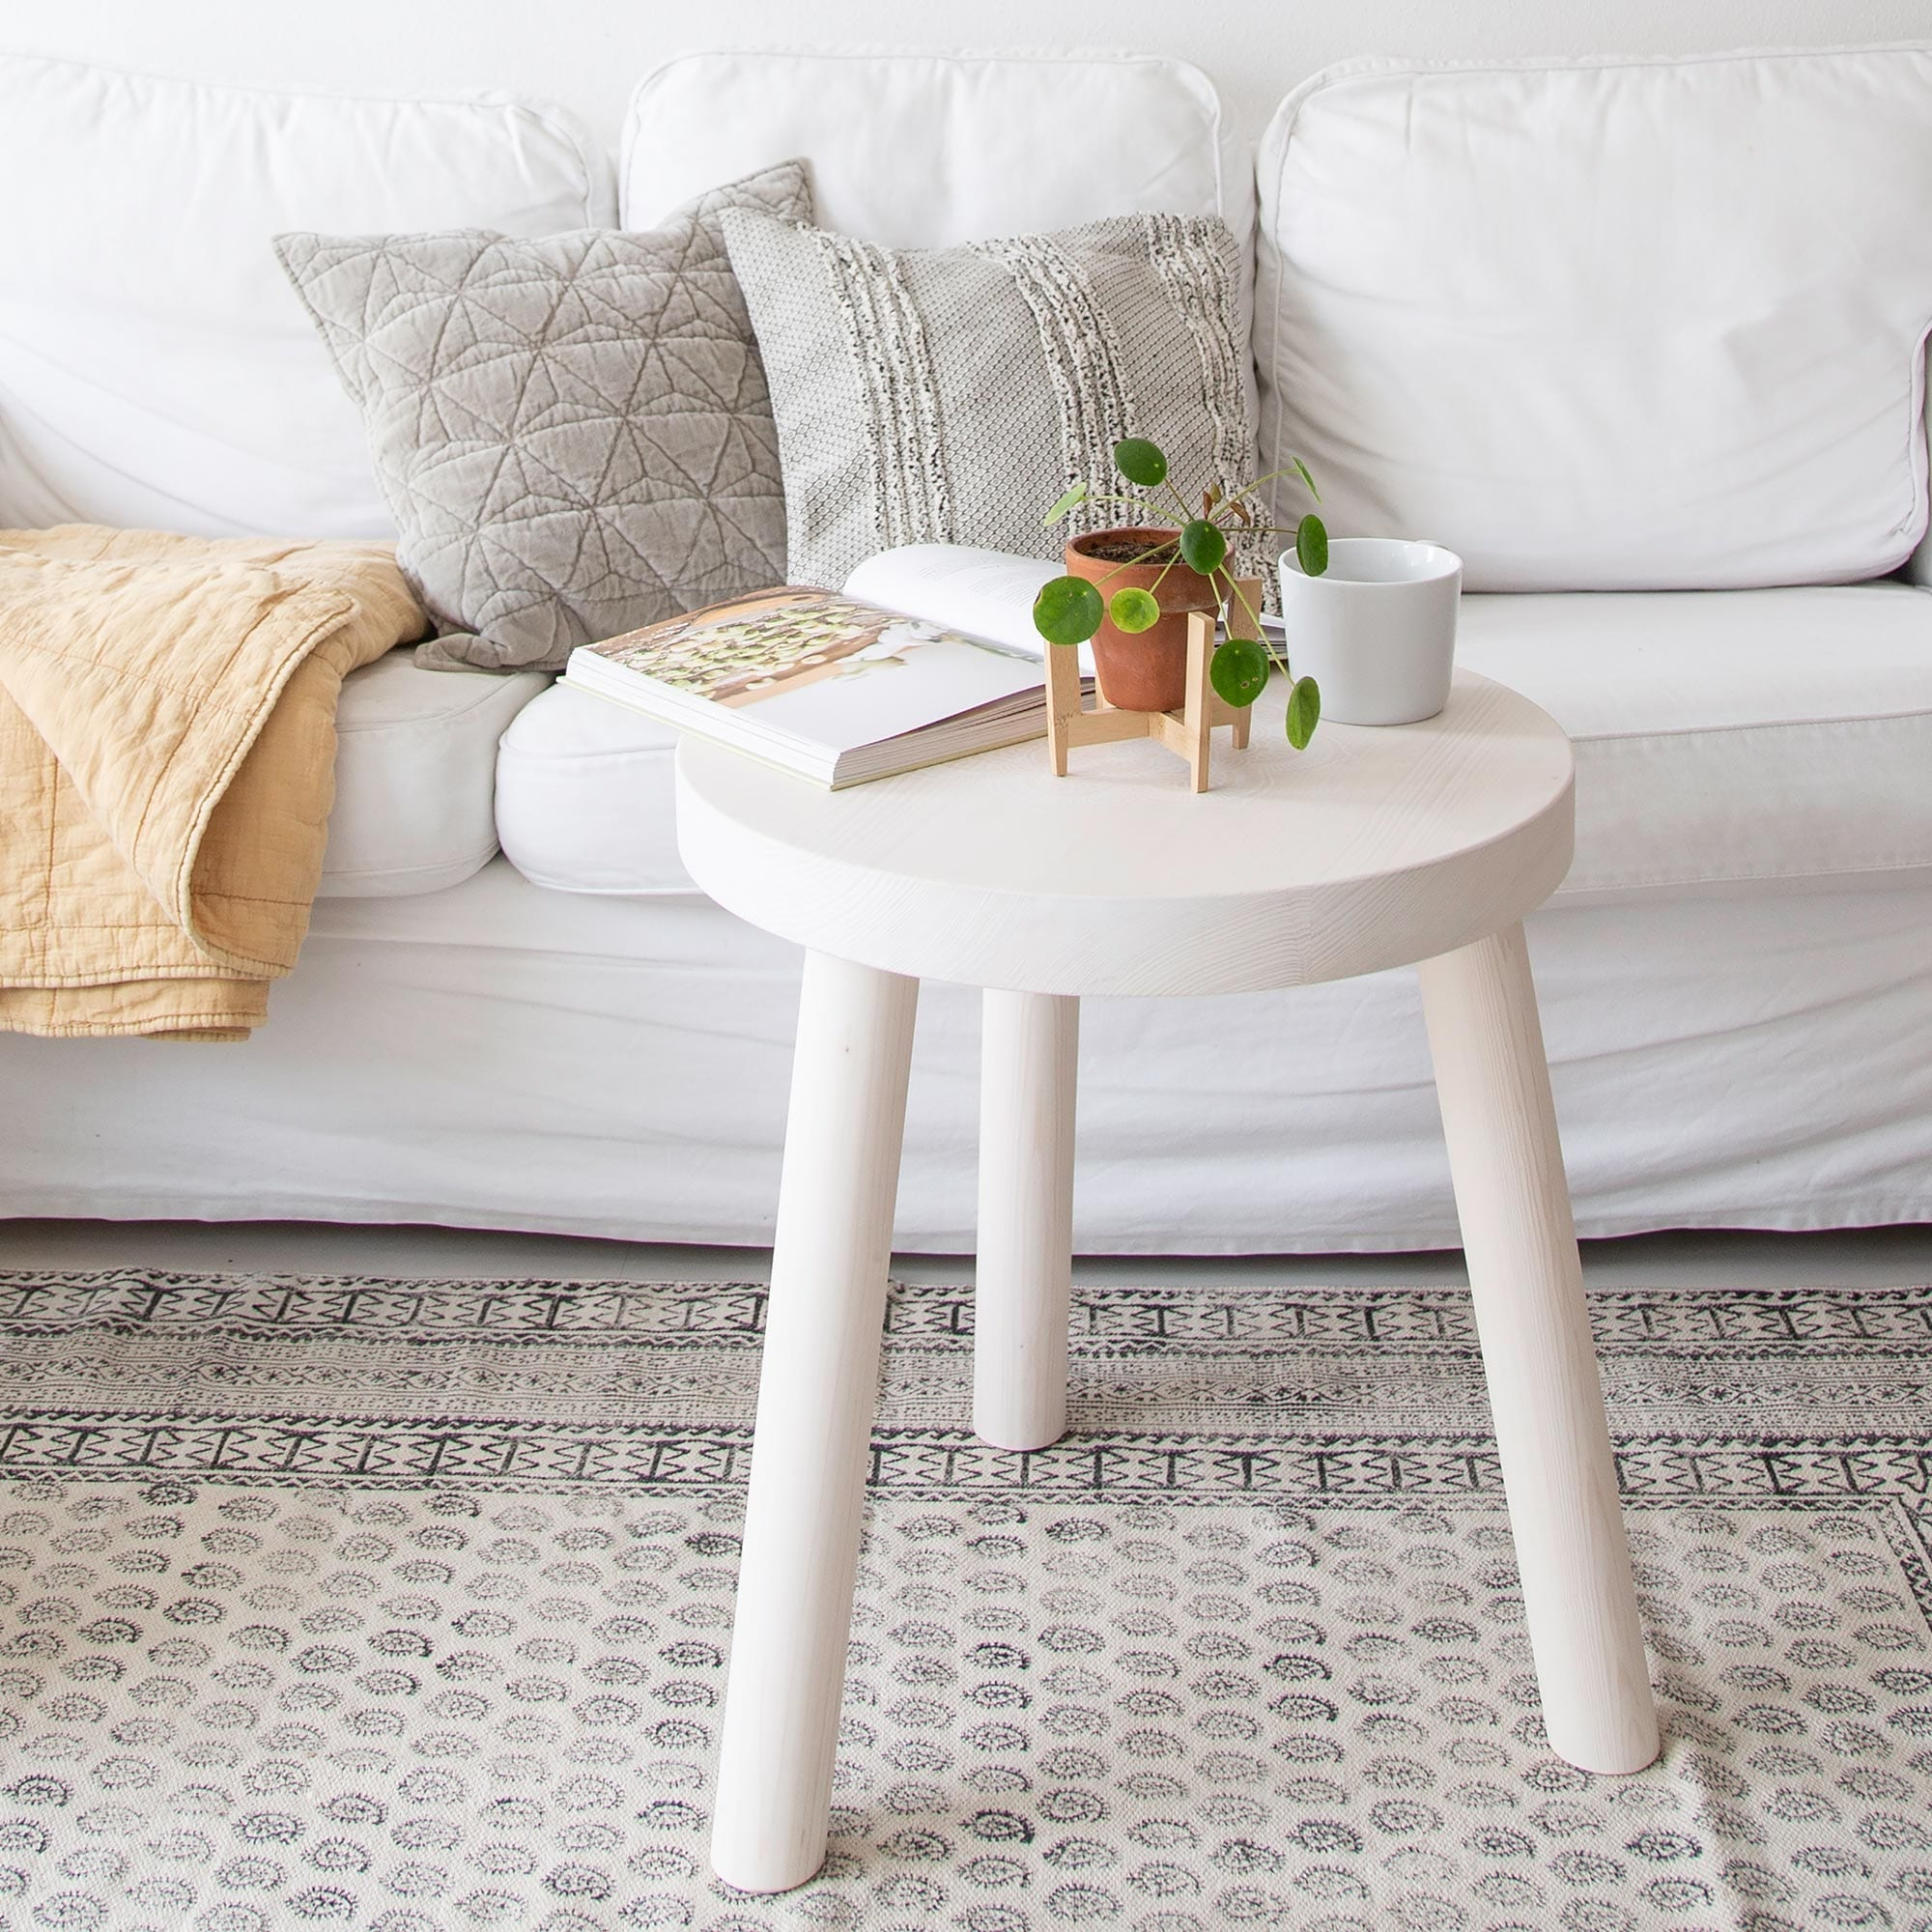 Easy-care carpet with a varied stamp pattern. The cotton rug is printed with black on beige by hand with pattern stamp. 70,8 x 47,2 and 106,2 x 74,8